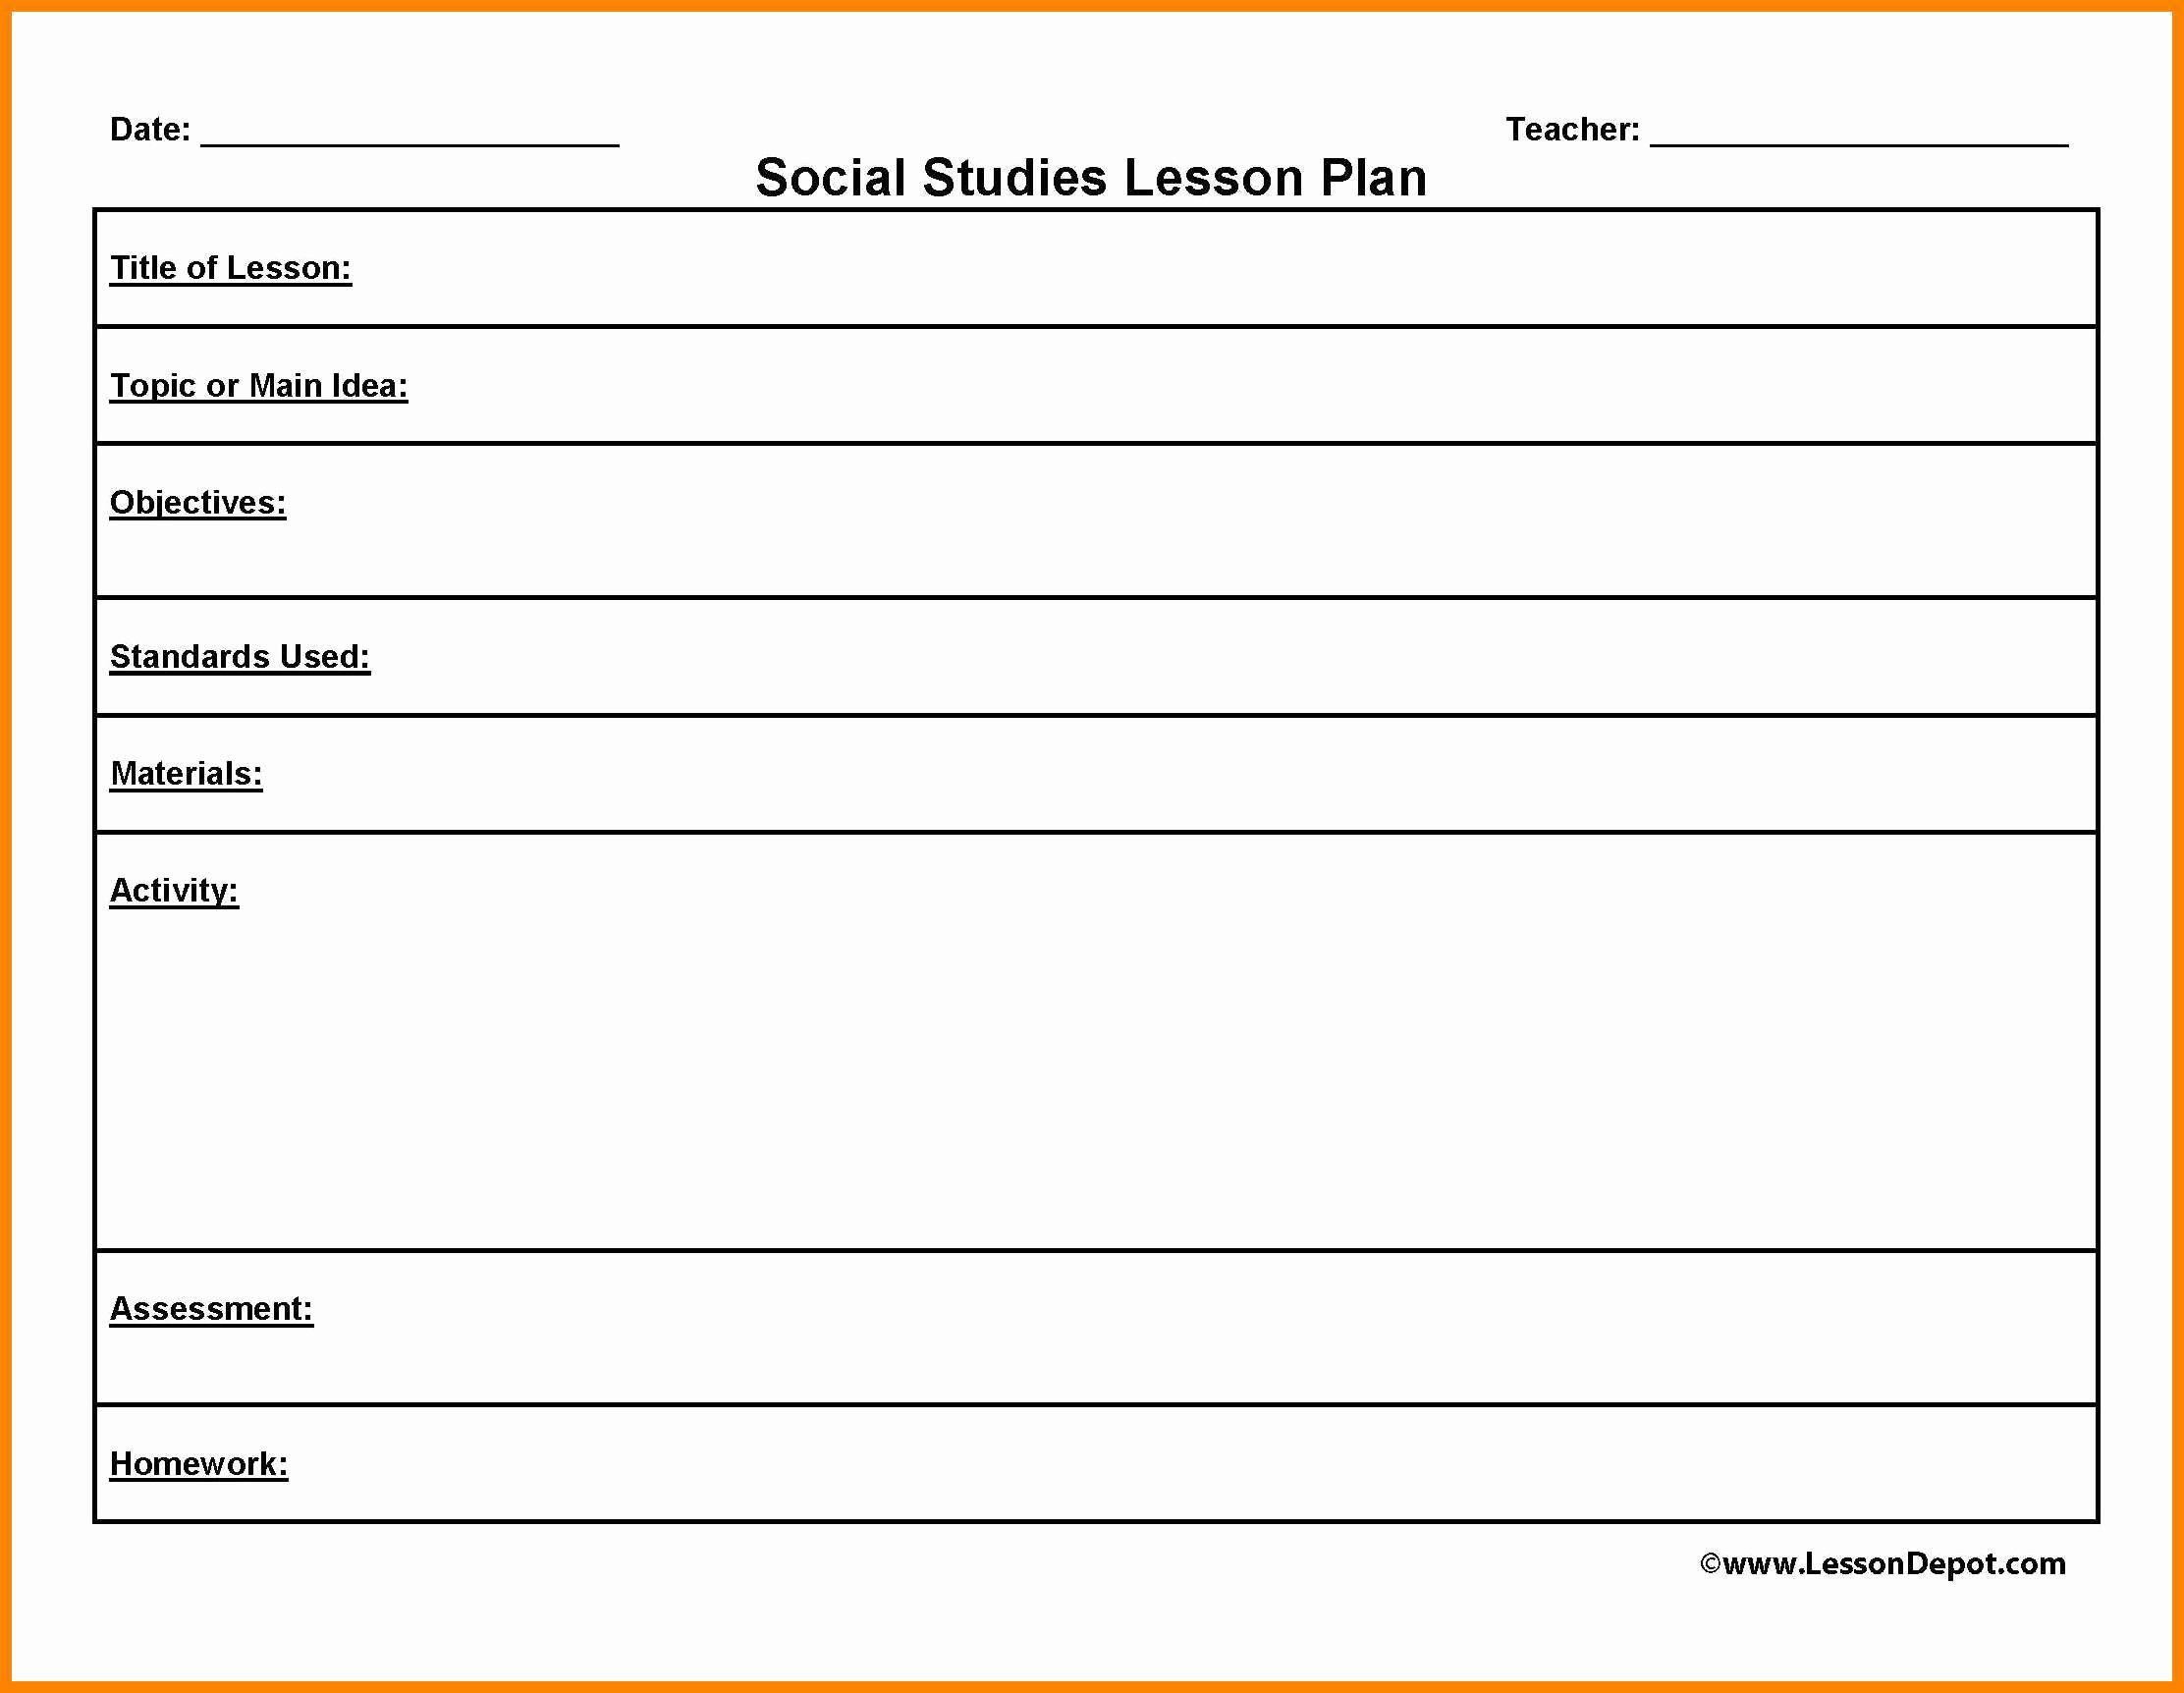 Lesson Plan Template Word Doc Inspirational Lesson Plan Template Word Printable Lesson Plans Lesson Plan Template Free Lesson Plan Outline